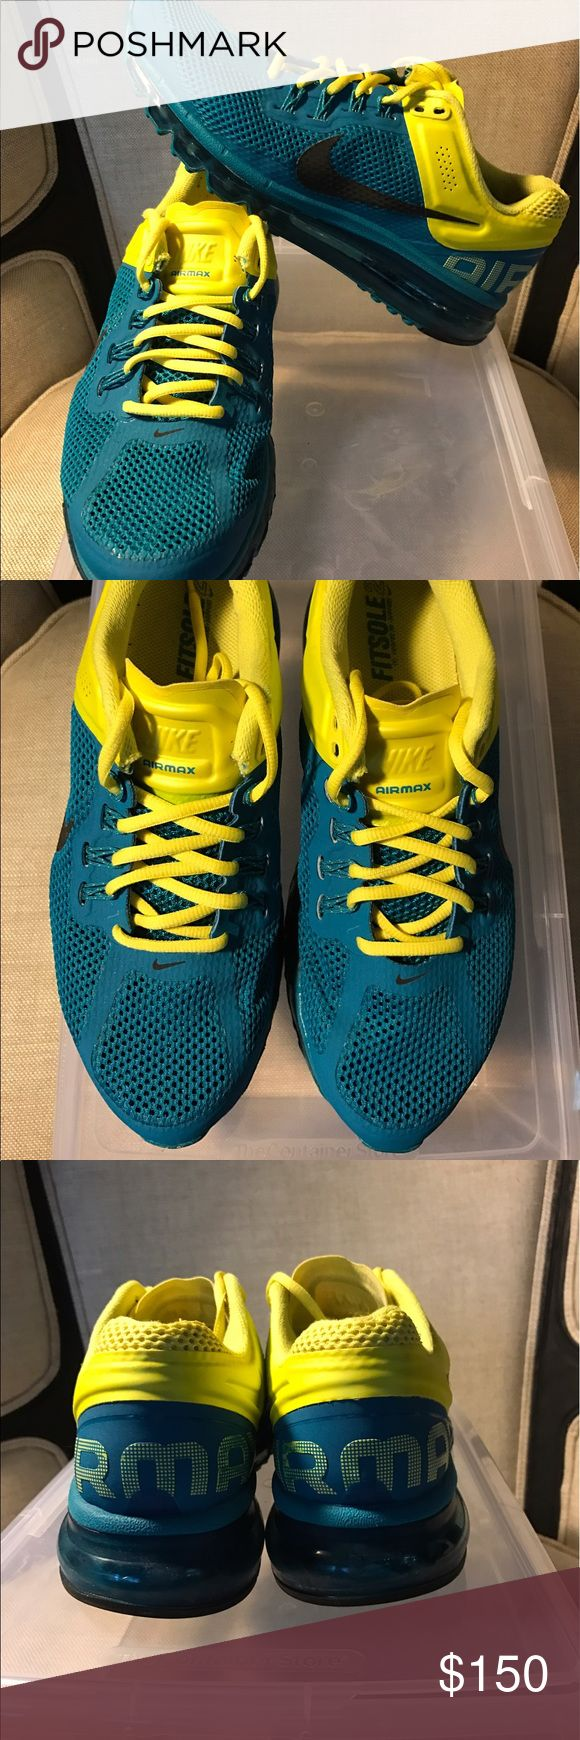 Nike Air Max 2013 • Tropical Teal & Sonic Yellow GREAT condition • See photos • Light wear • No stains or rips. Purchased from Dicks Sporting Goods directly. Limited color - impossible to find • Great for an Air Max Ltd. Collector • Smoke and Pet Free Home • Women's 9.5 Nike Shoes Sneakers